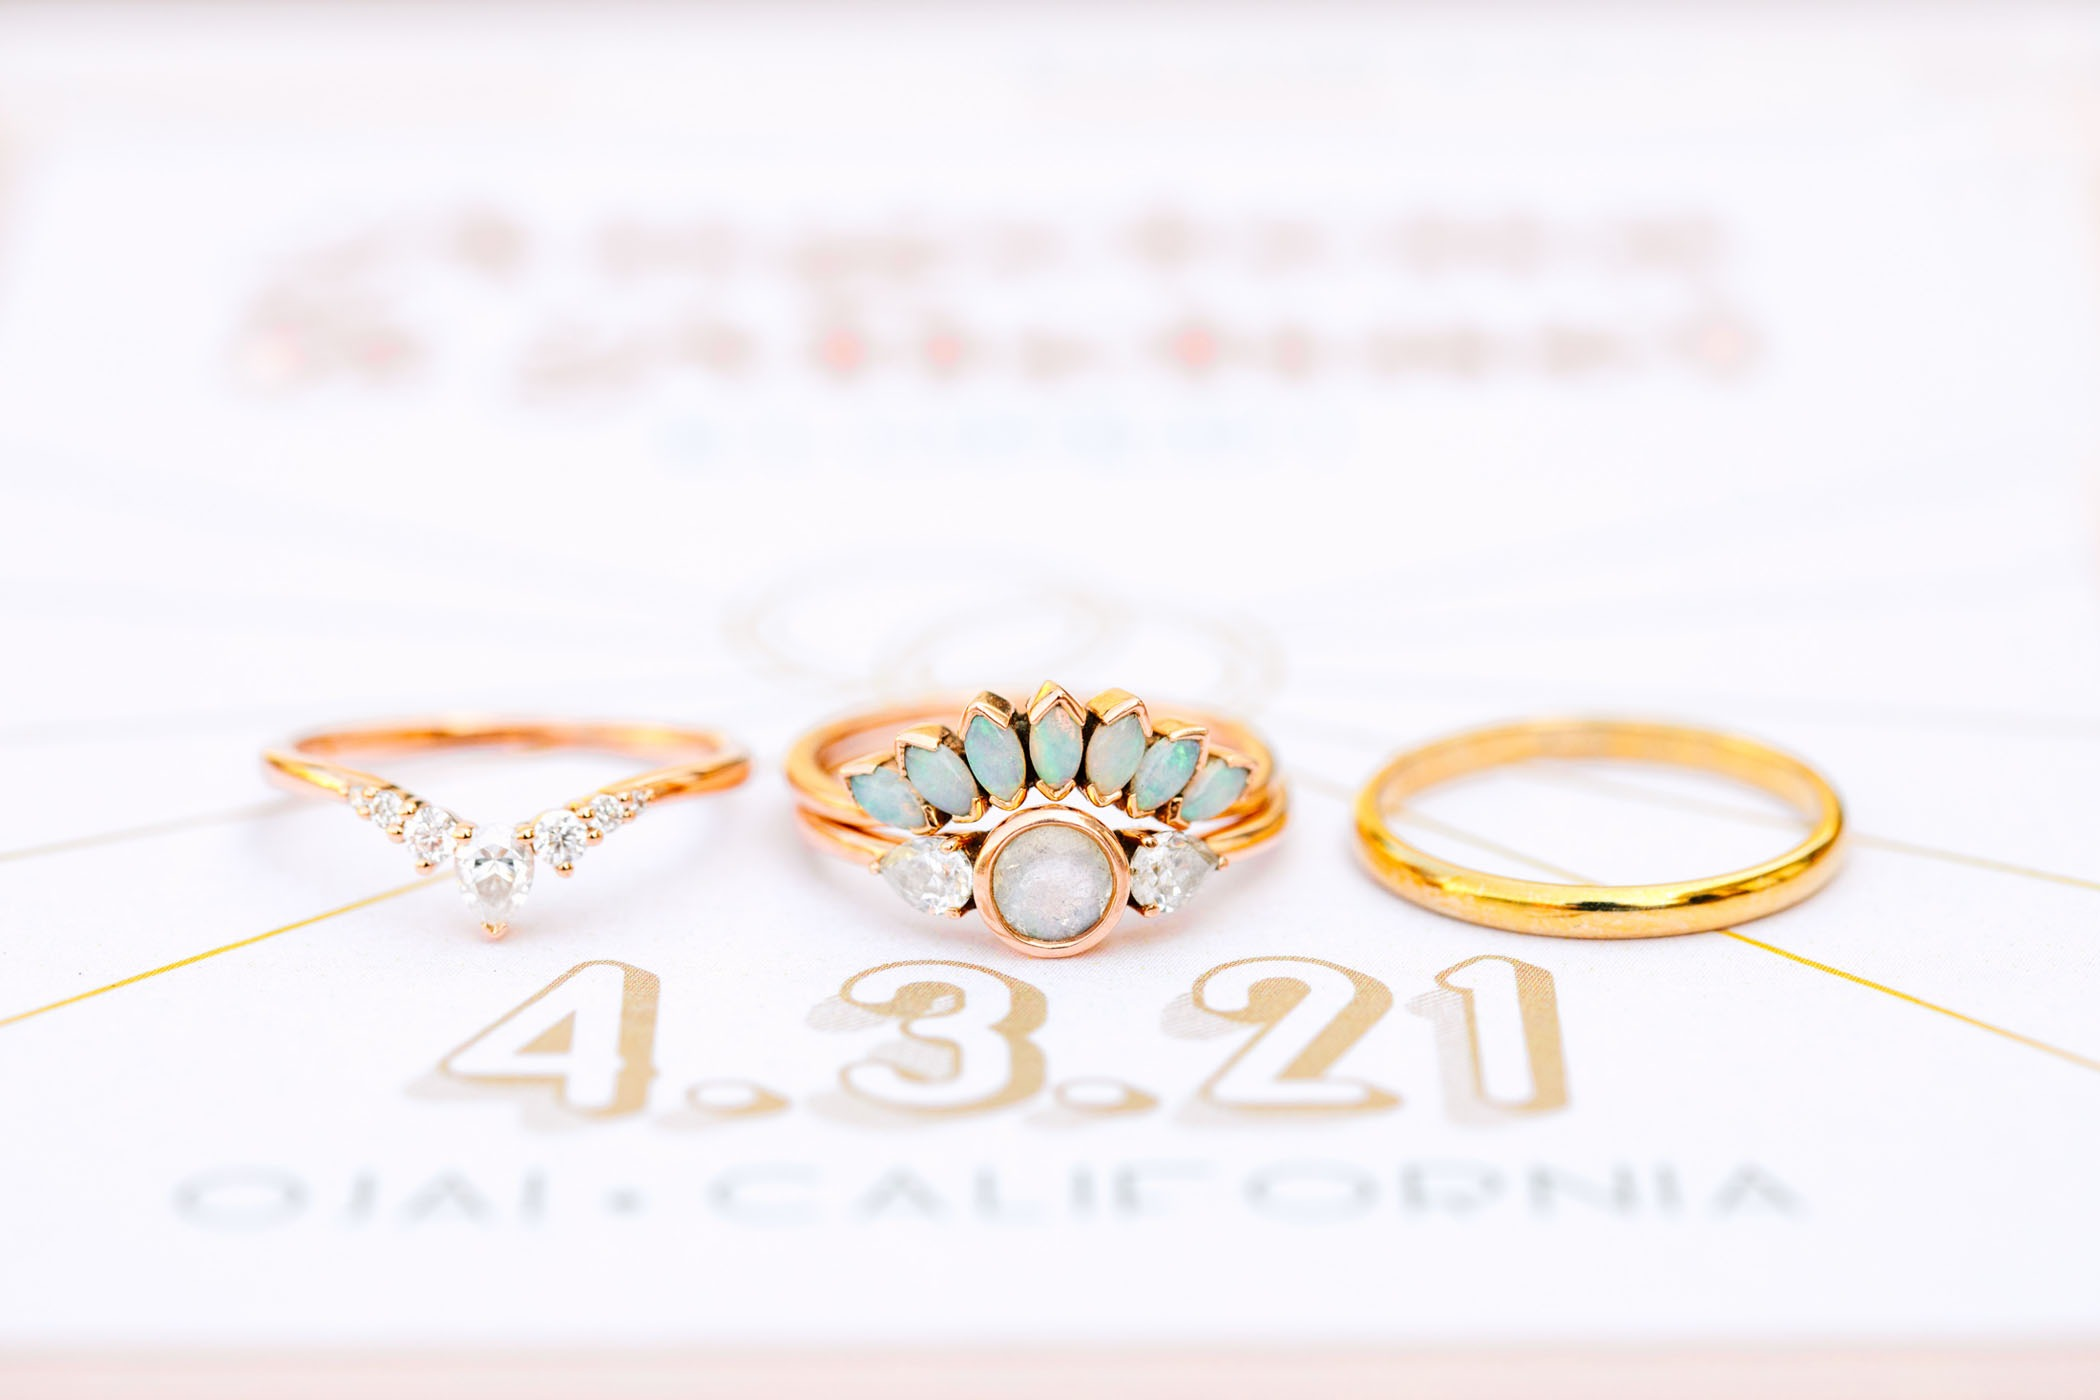 bezel set engagement ring with opal accents